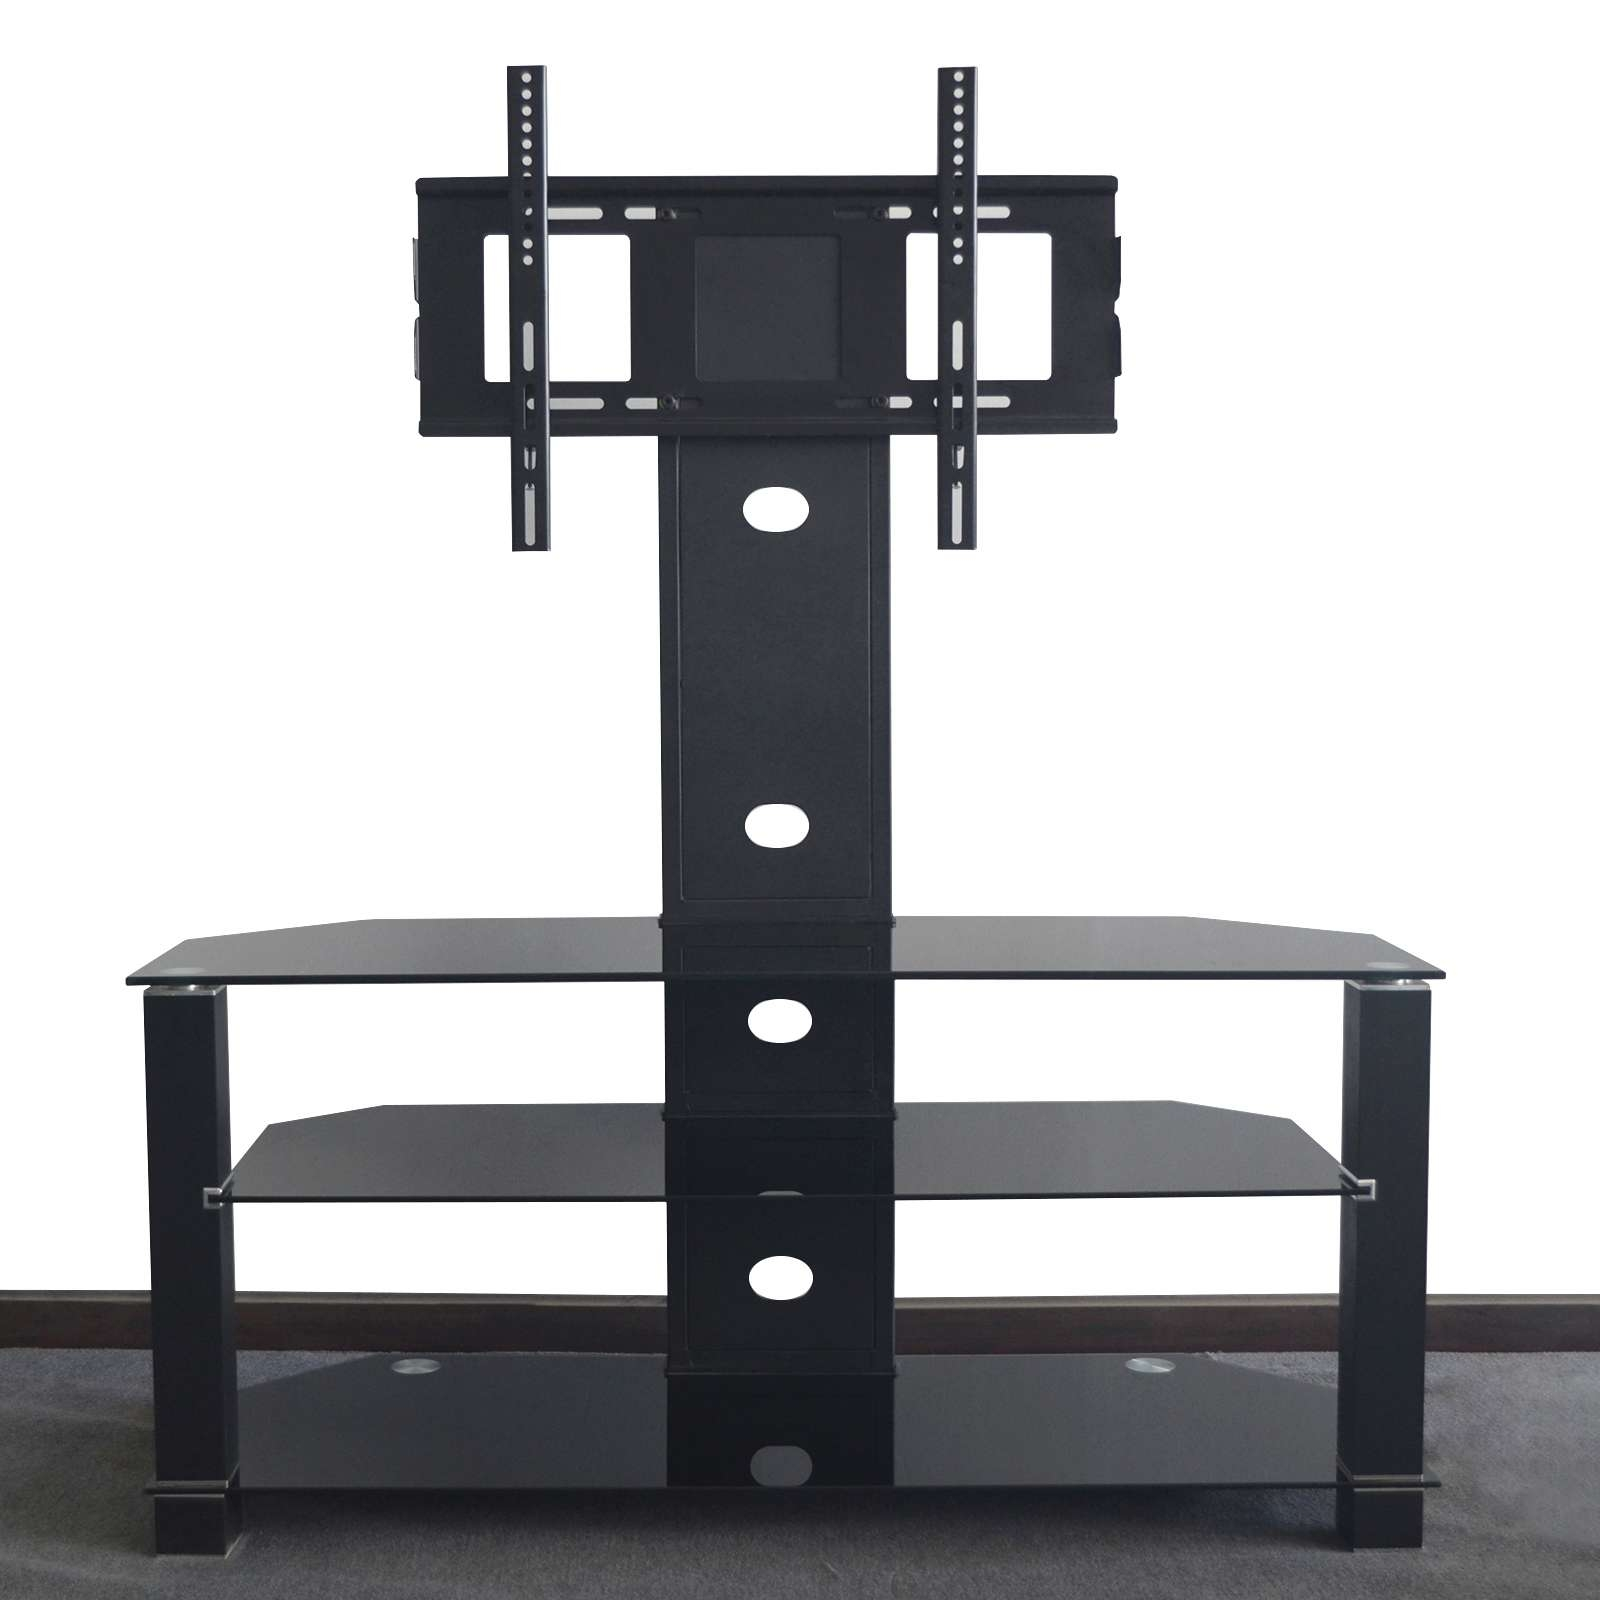 Cantilever Glass Tv Stand With Swivel Bracket For 32 To 55 Inches Pertaining To Cantilever Glass Tv Stands (View 17 of 20)